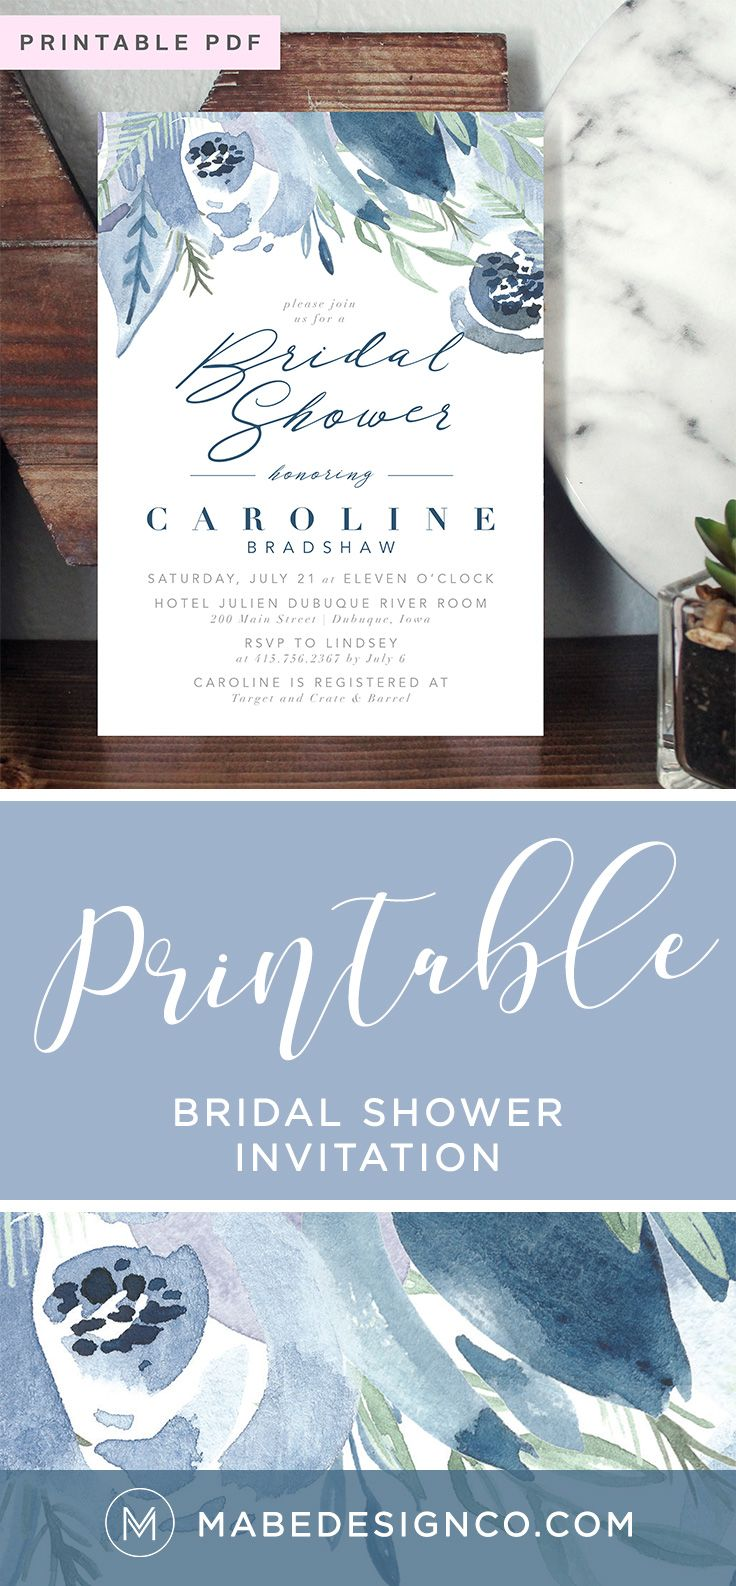 wedding shower invite sample%0A A printable boho bridal shower invitation featuring digital handpainted  watercolor floral elements  The design is customizable and can feature the  wording